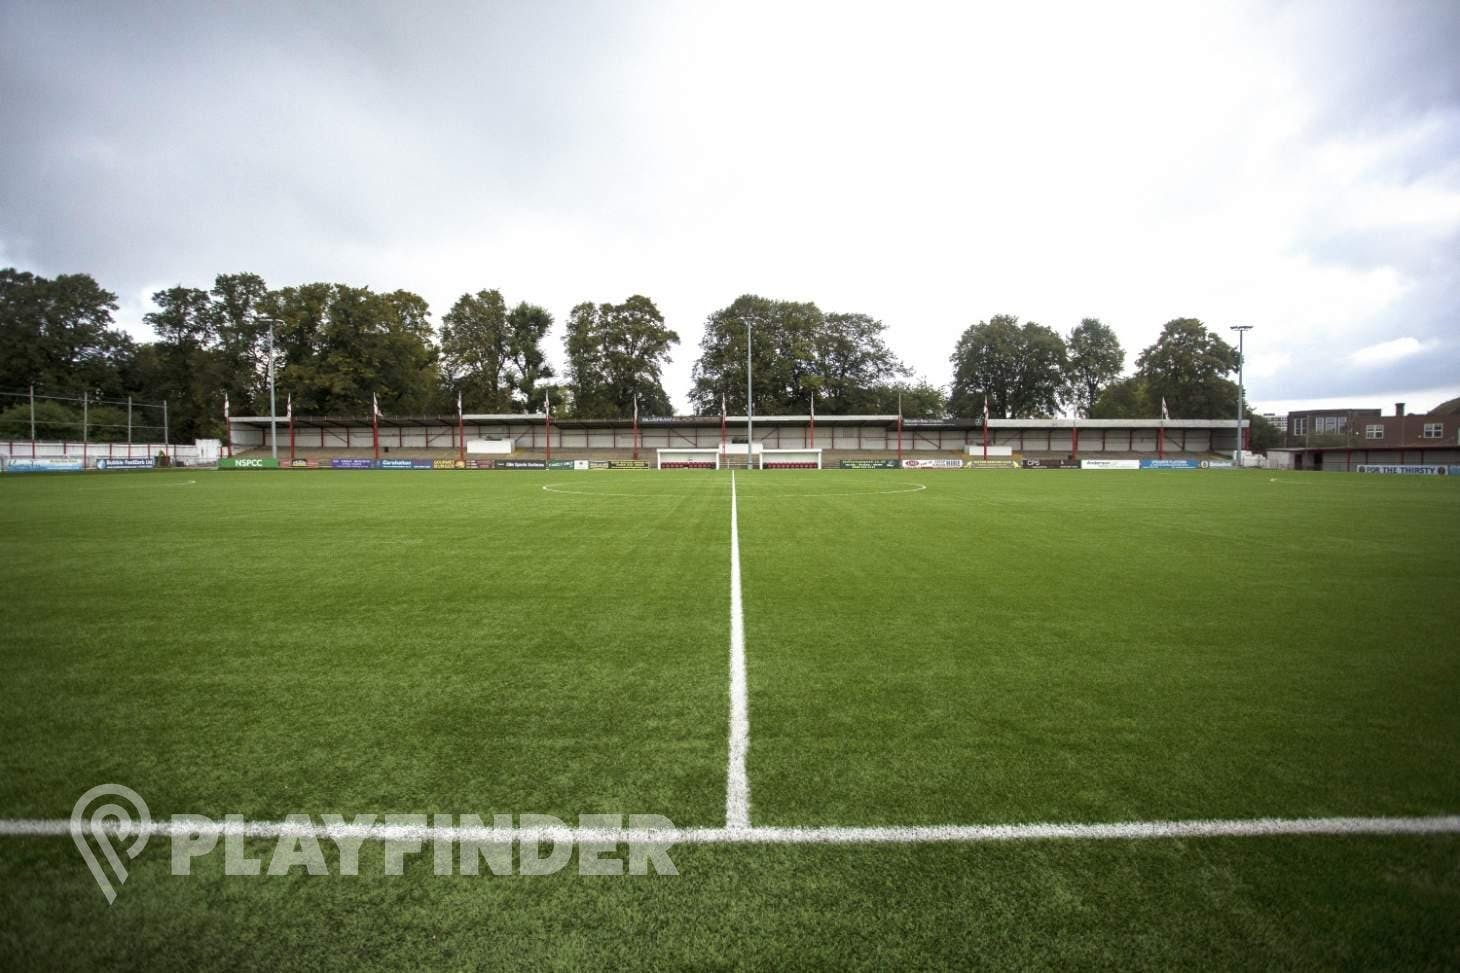 Colston Avenue Football Stadium 11 a side | 3G Astroturf football pitch